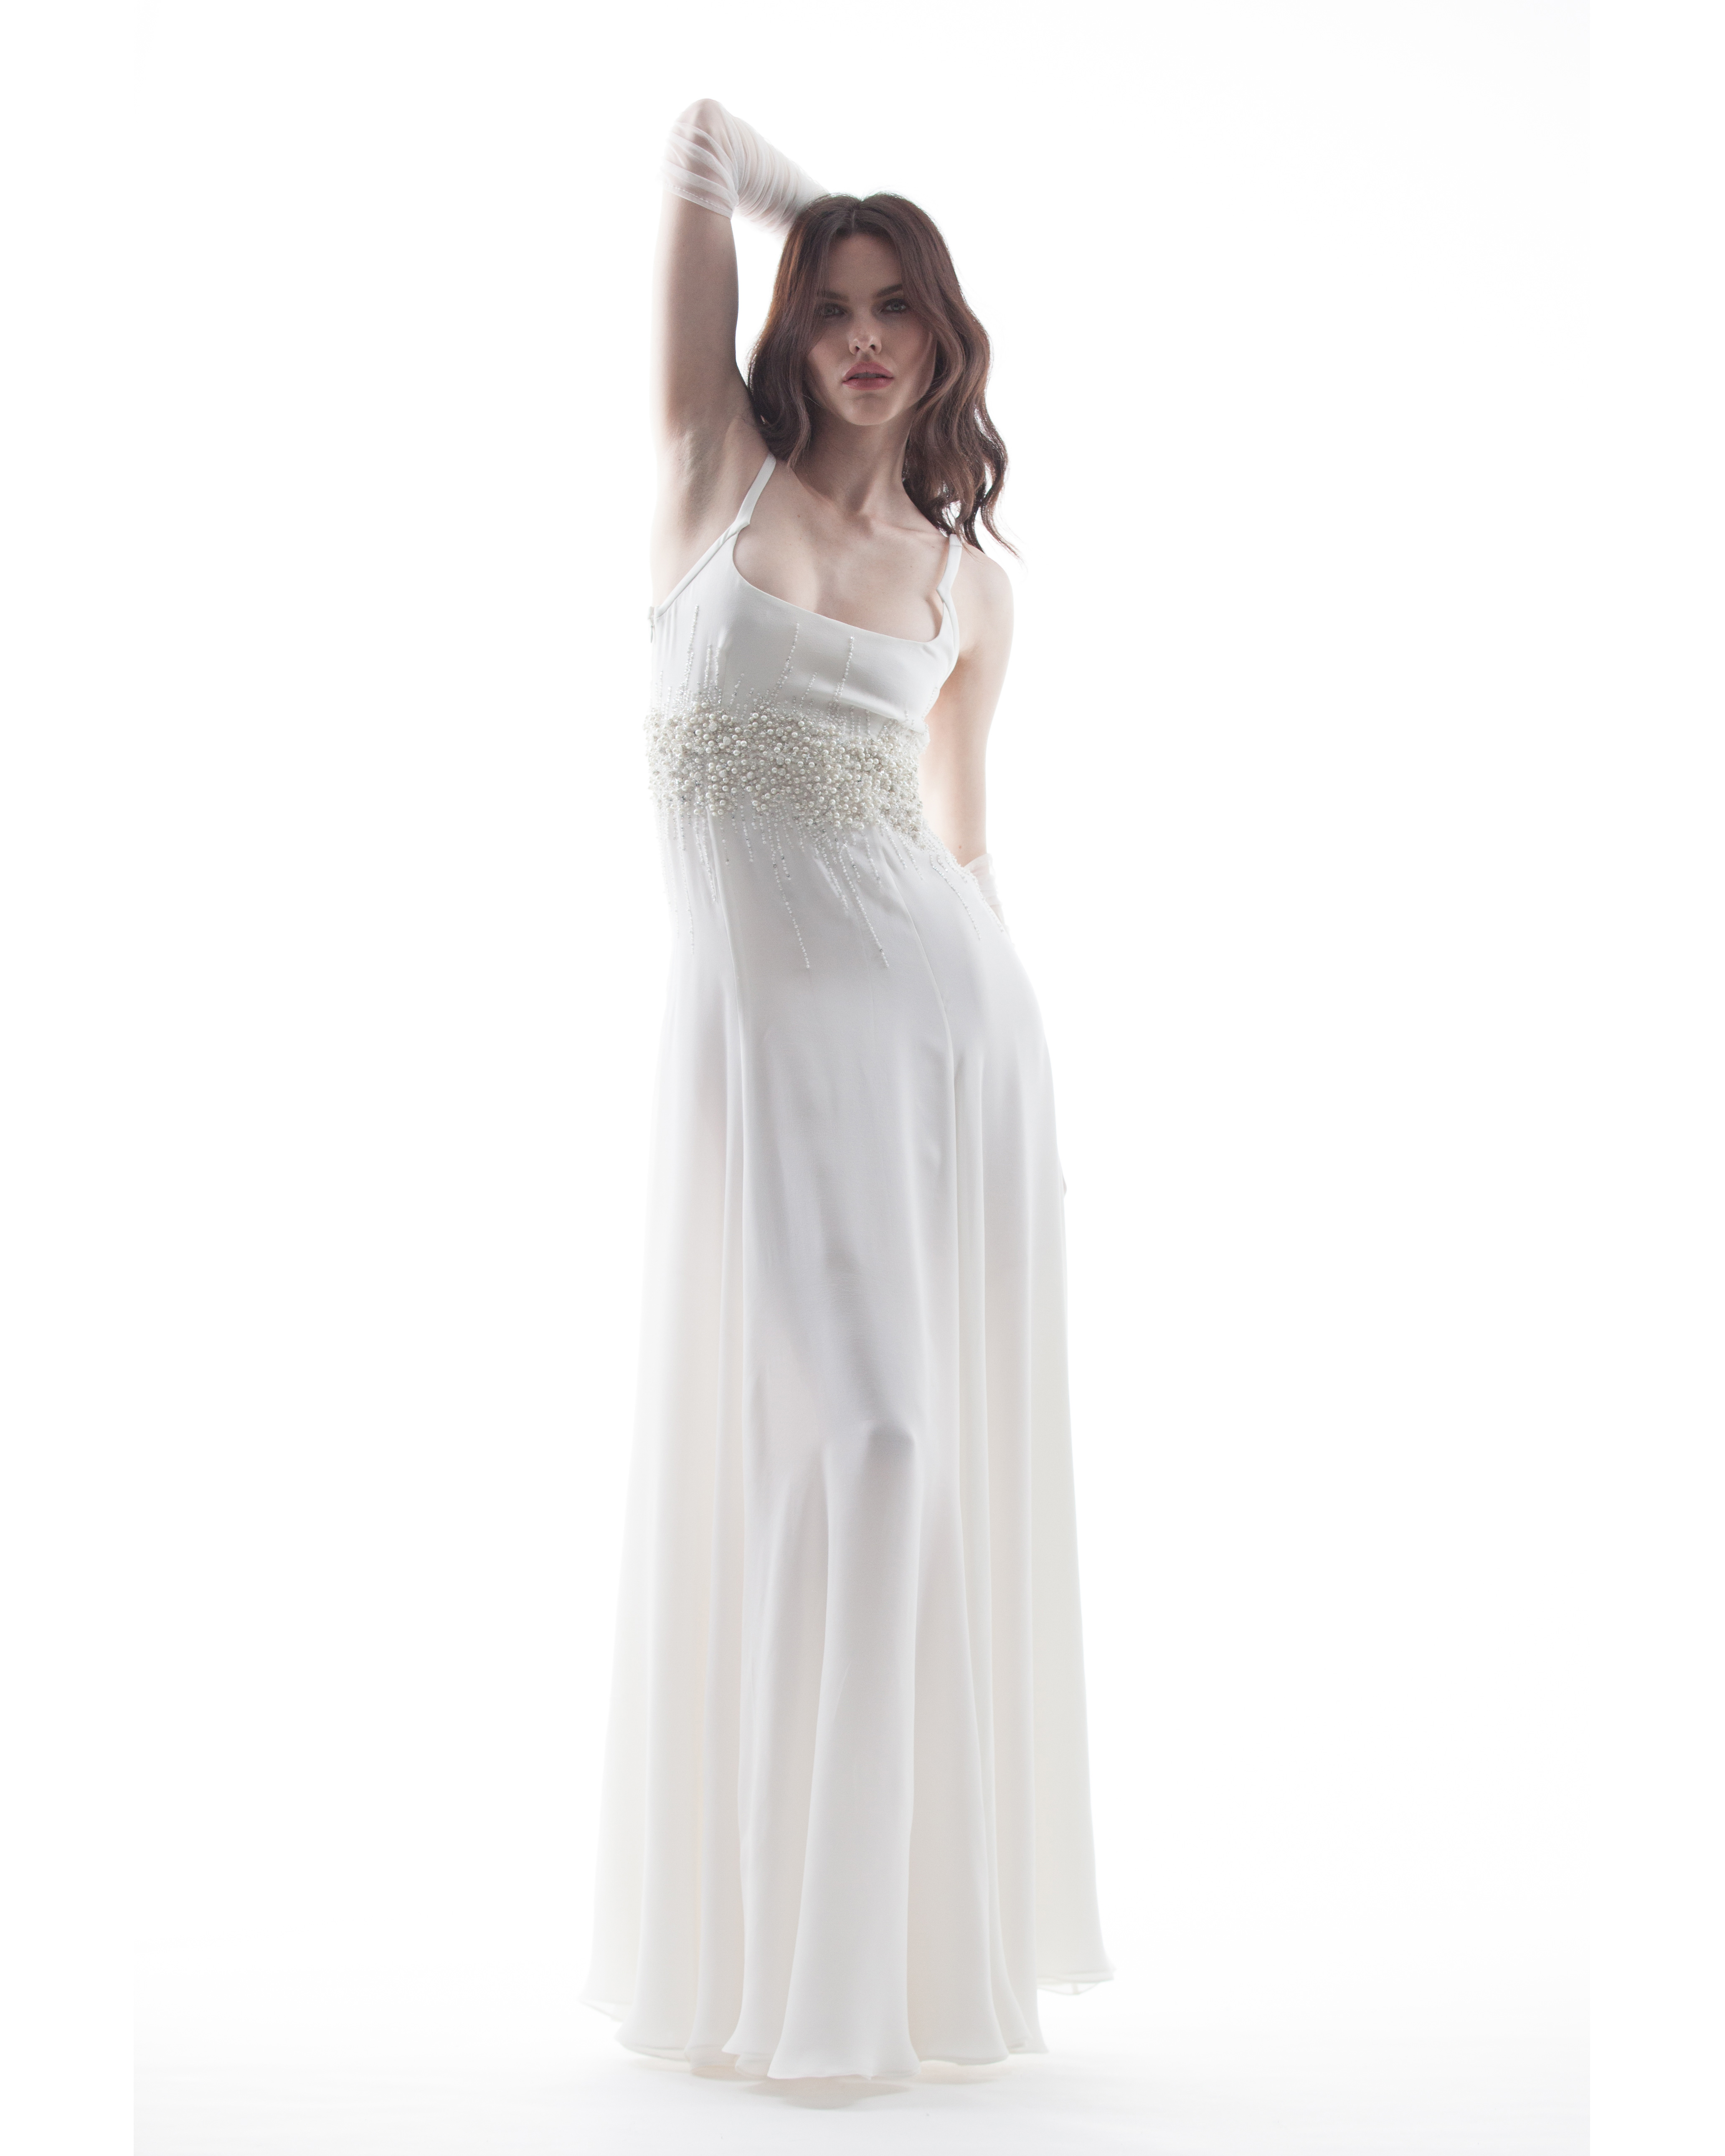 houghton wedding dress spring 2018